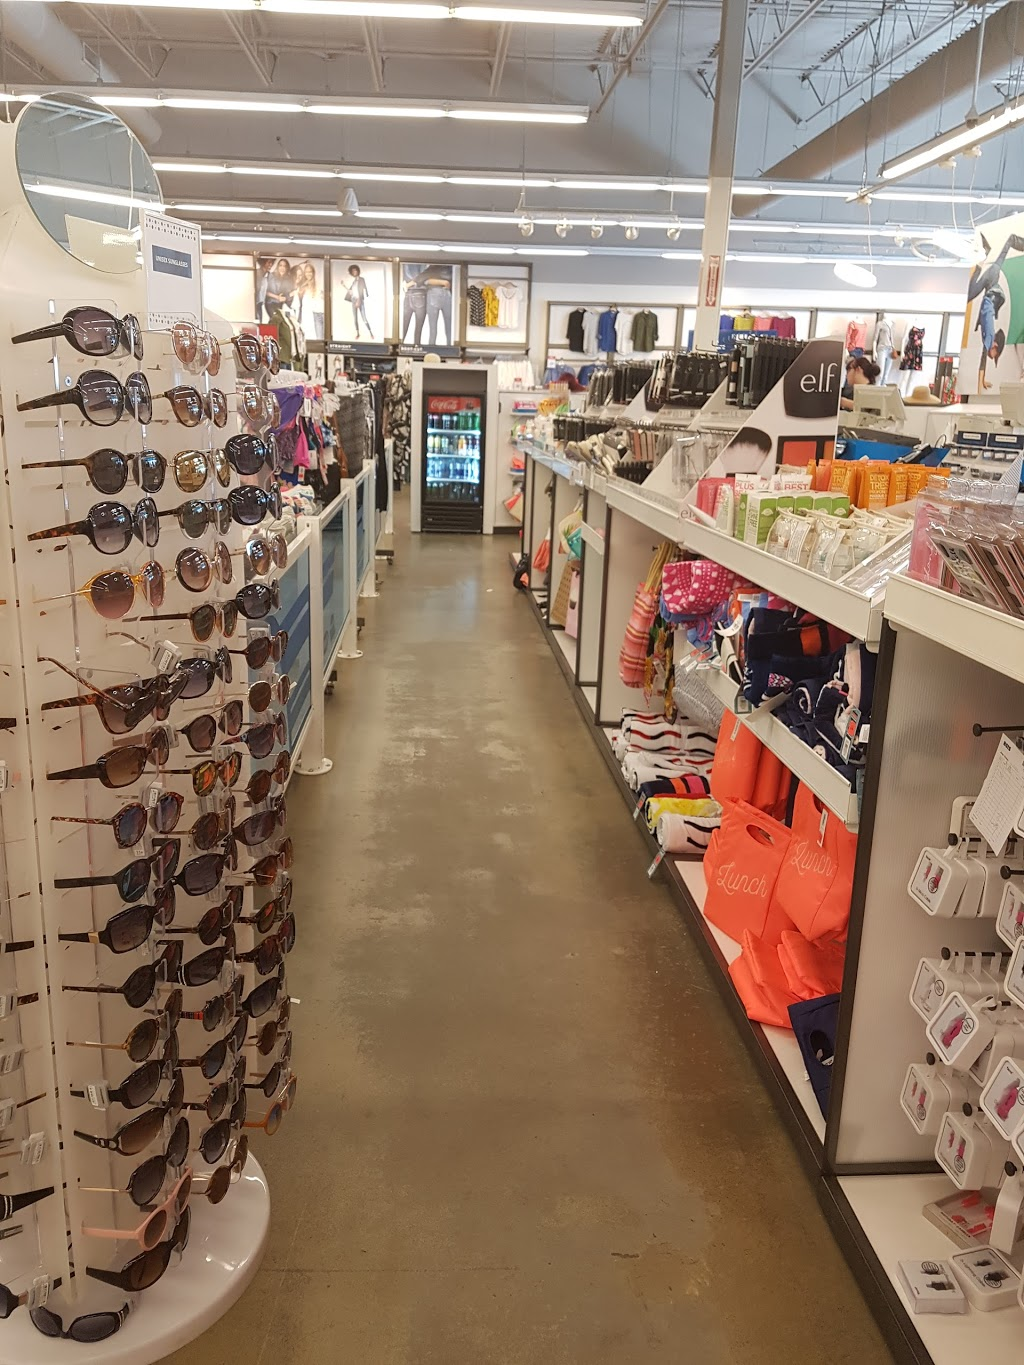 Old Navy | clothing store | 13158 137 Ave NW, Edmonton, AB T5L 4Z6, Canada | 7804784477 OR +1 780-478-4477